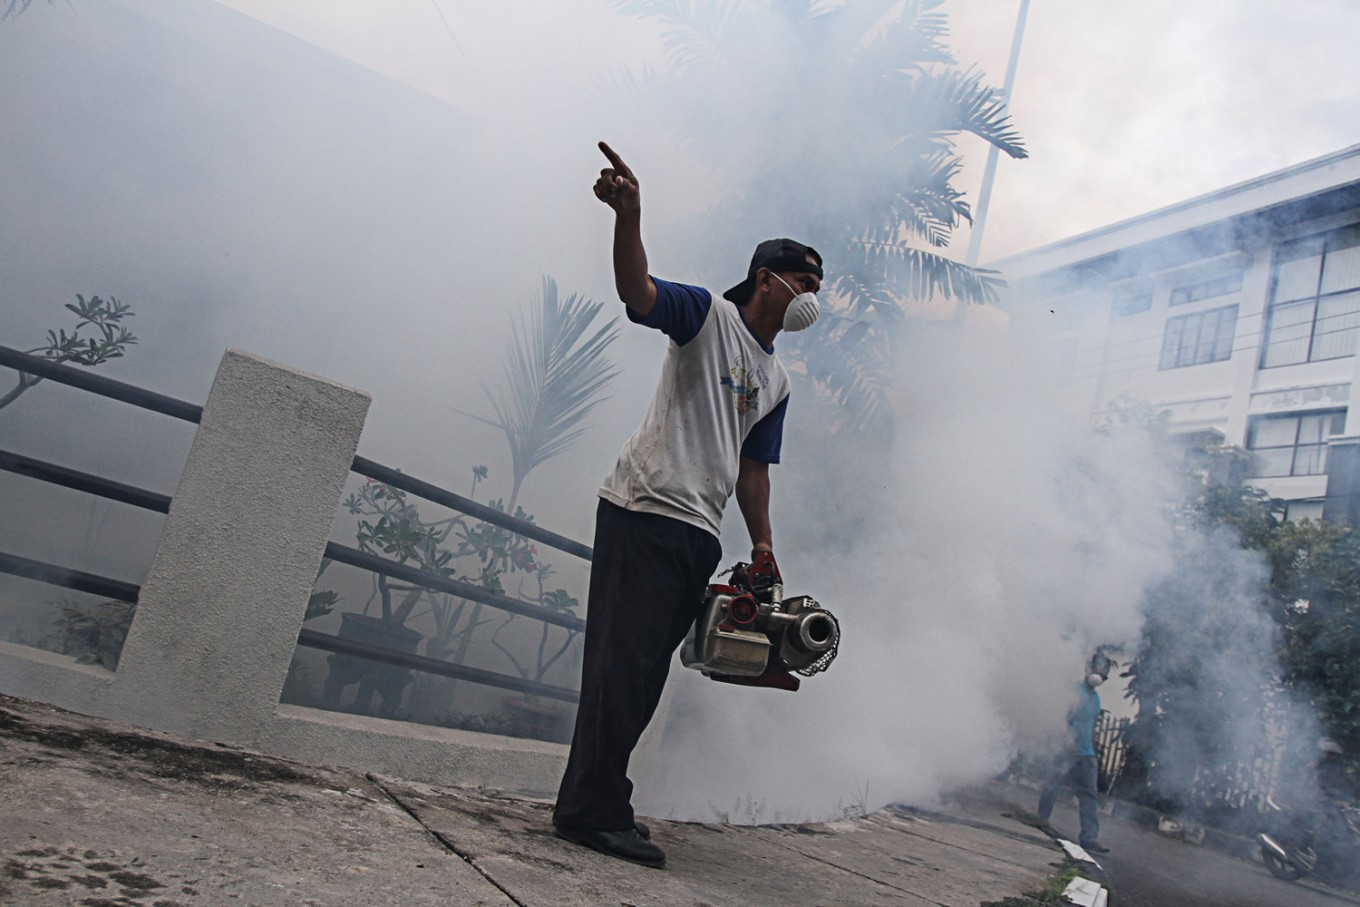 Jambi sees high number of dengue cases